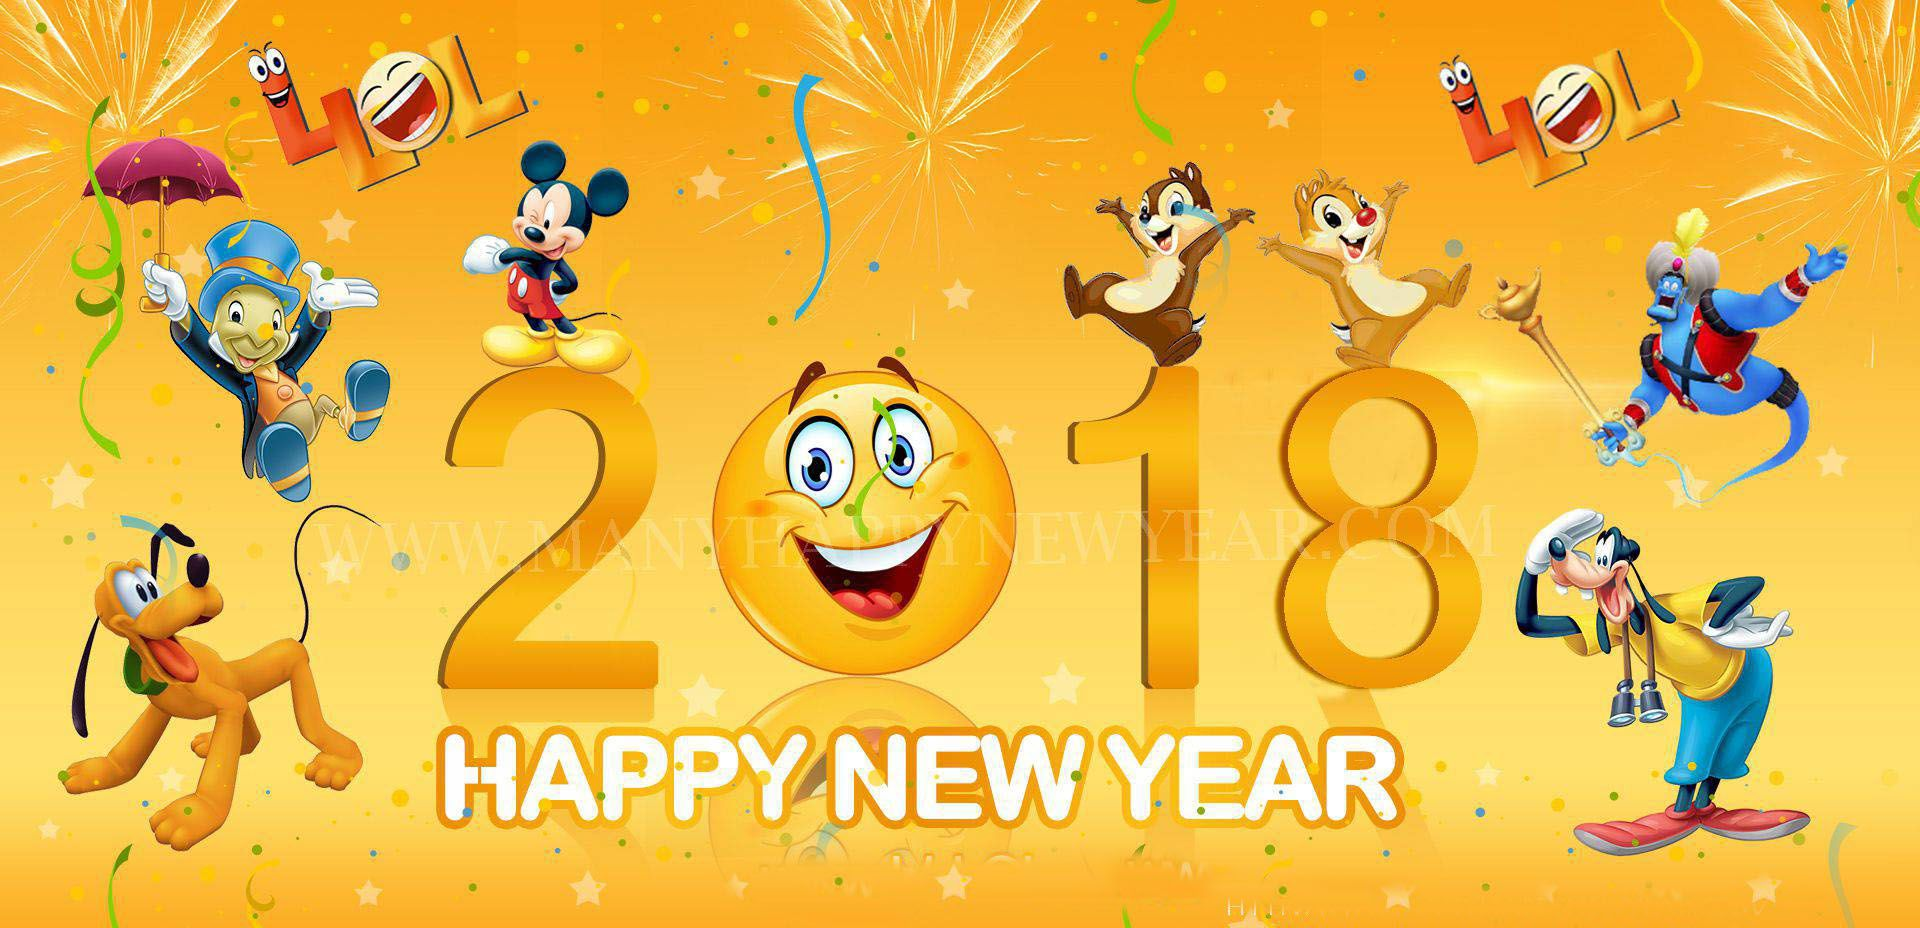 happy new year 2018 happy new year happy new year wishes happy new year images happy new year 2018 wishes happy new year 2018 quotes in punjabi happy